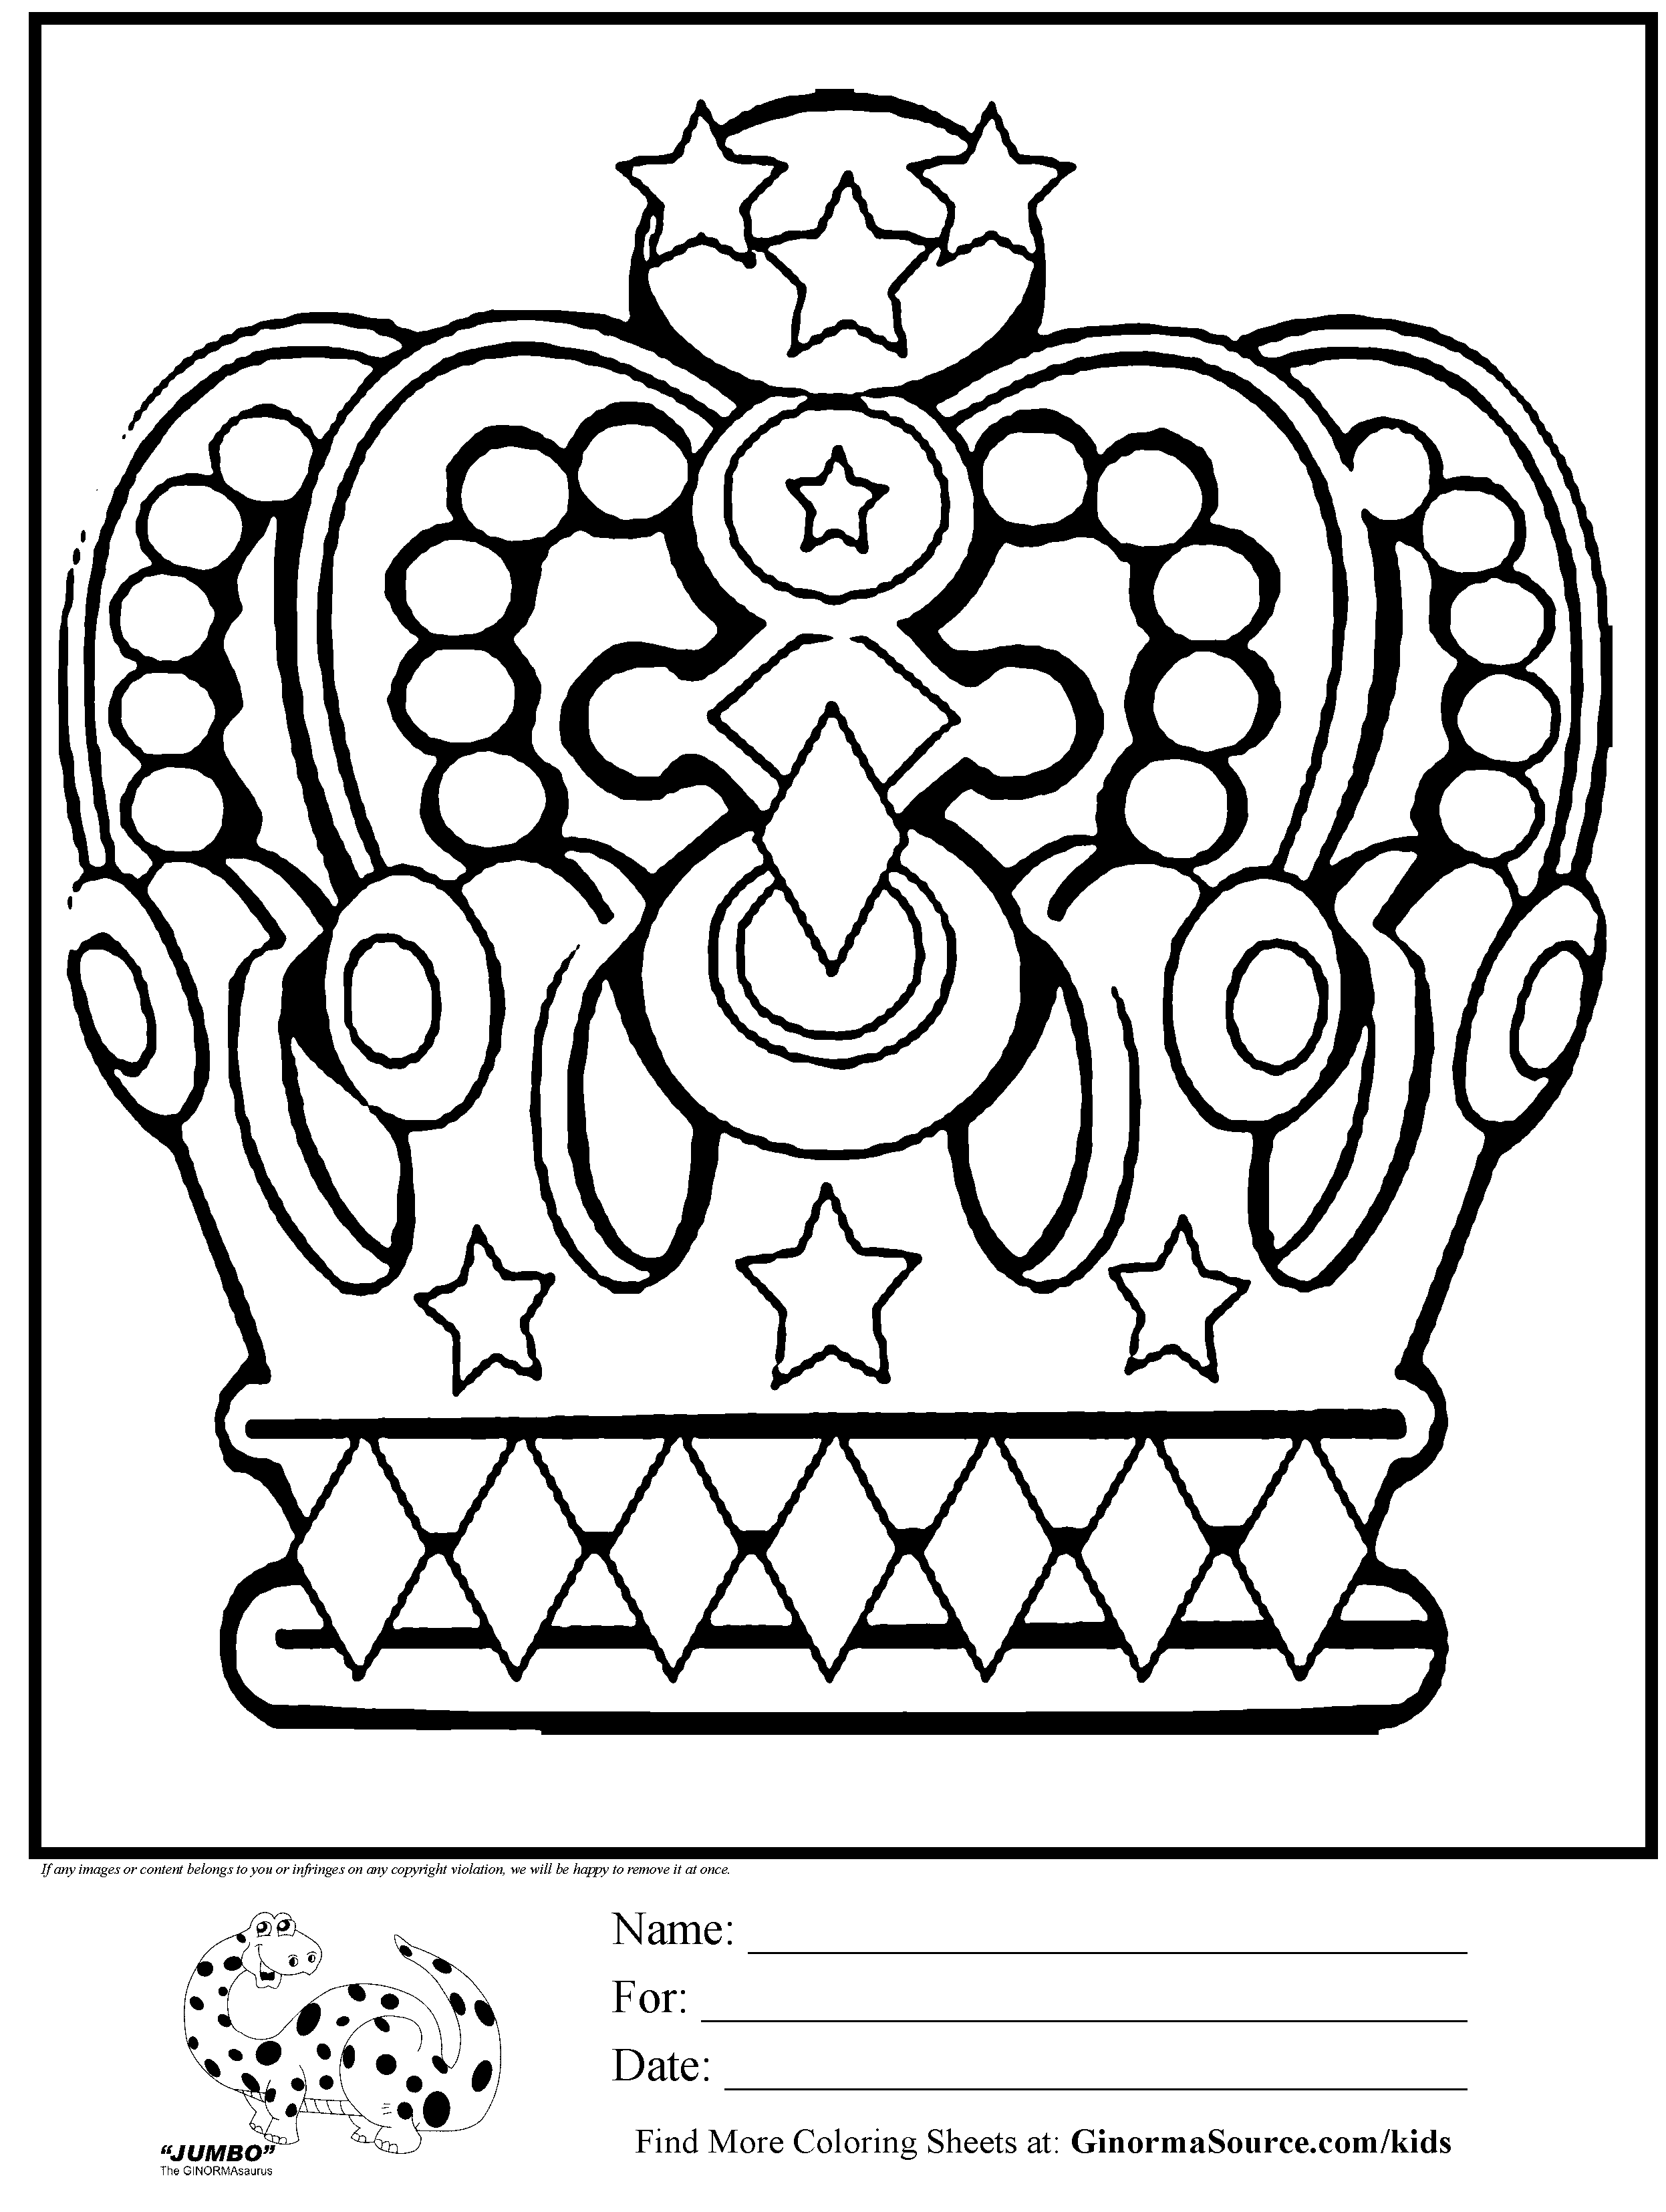 Coloring Page Crown Coloring Pages Descendants Coloring Pages Crown Template